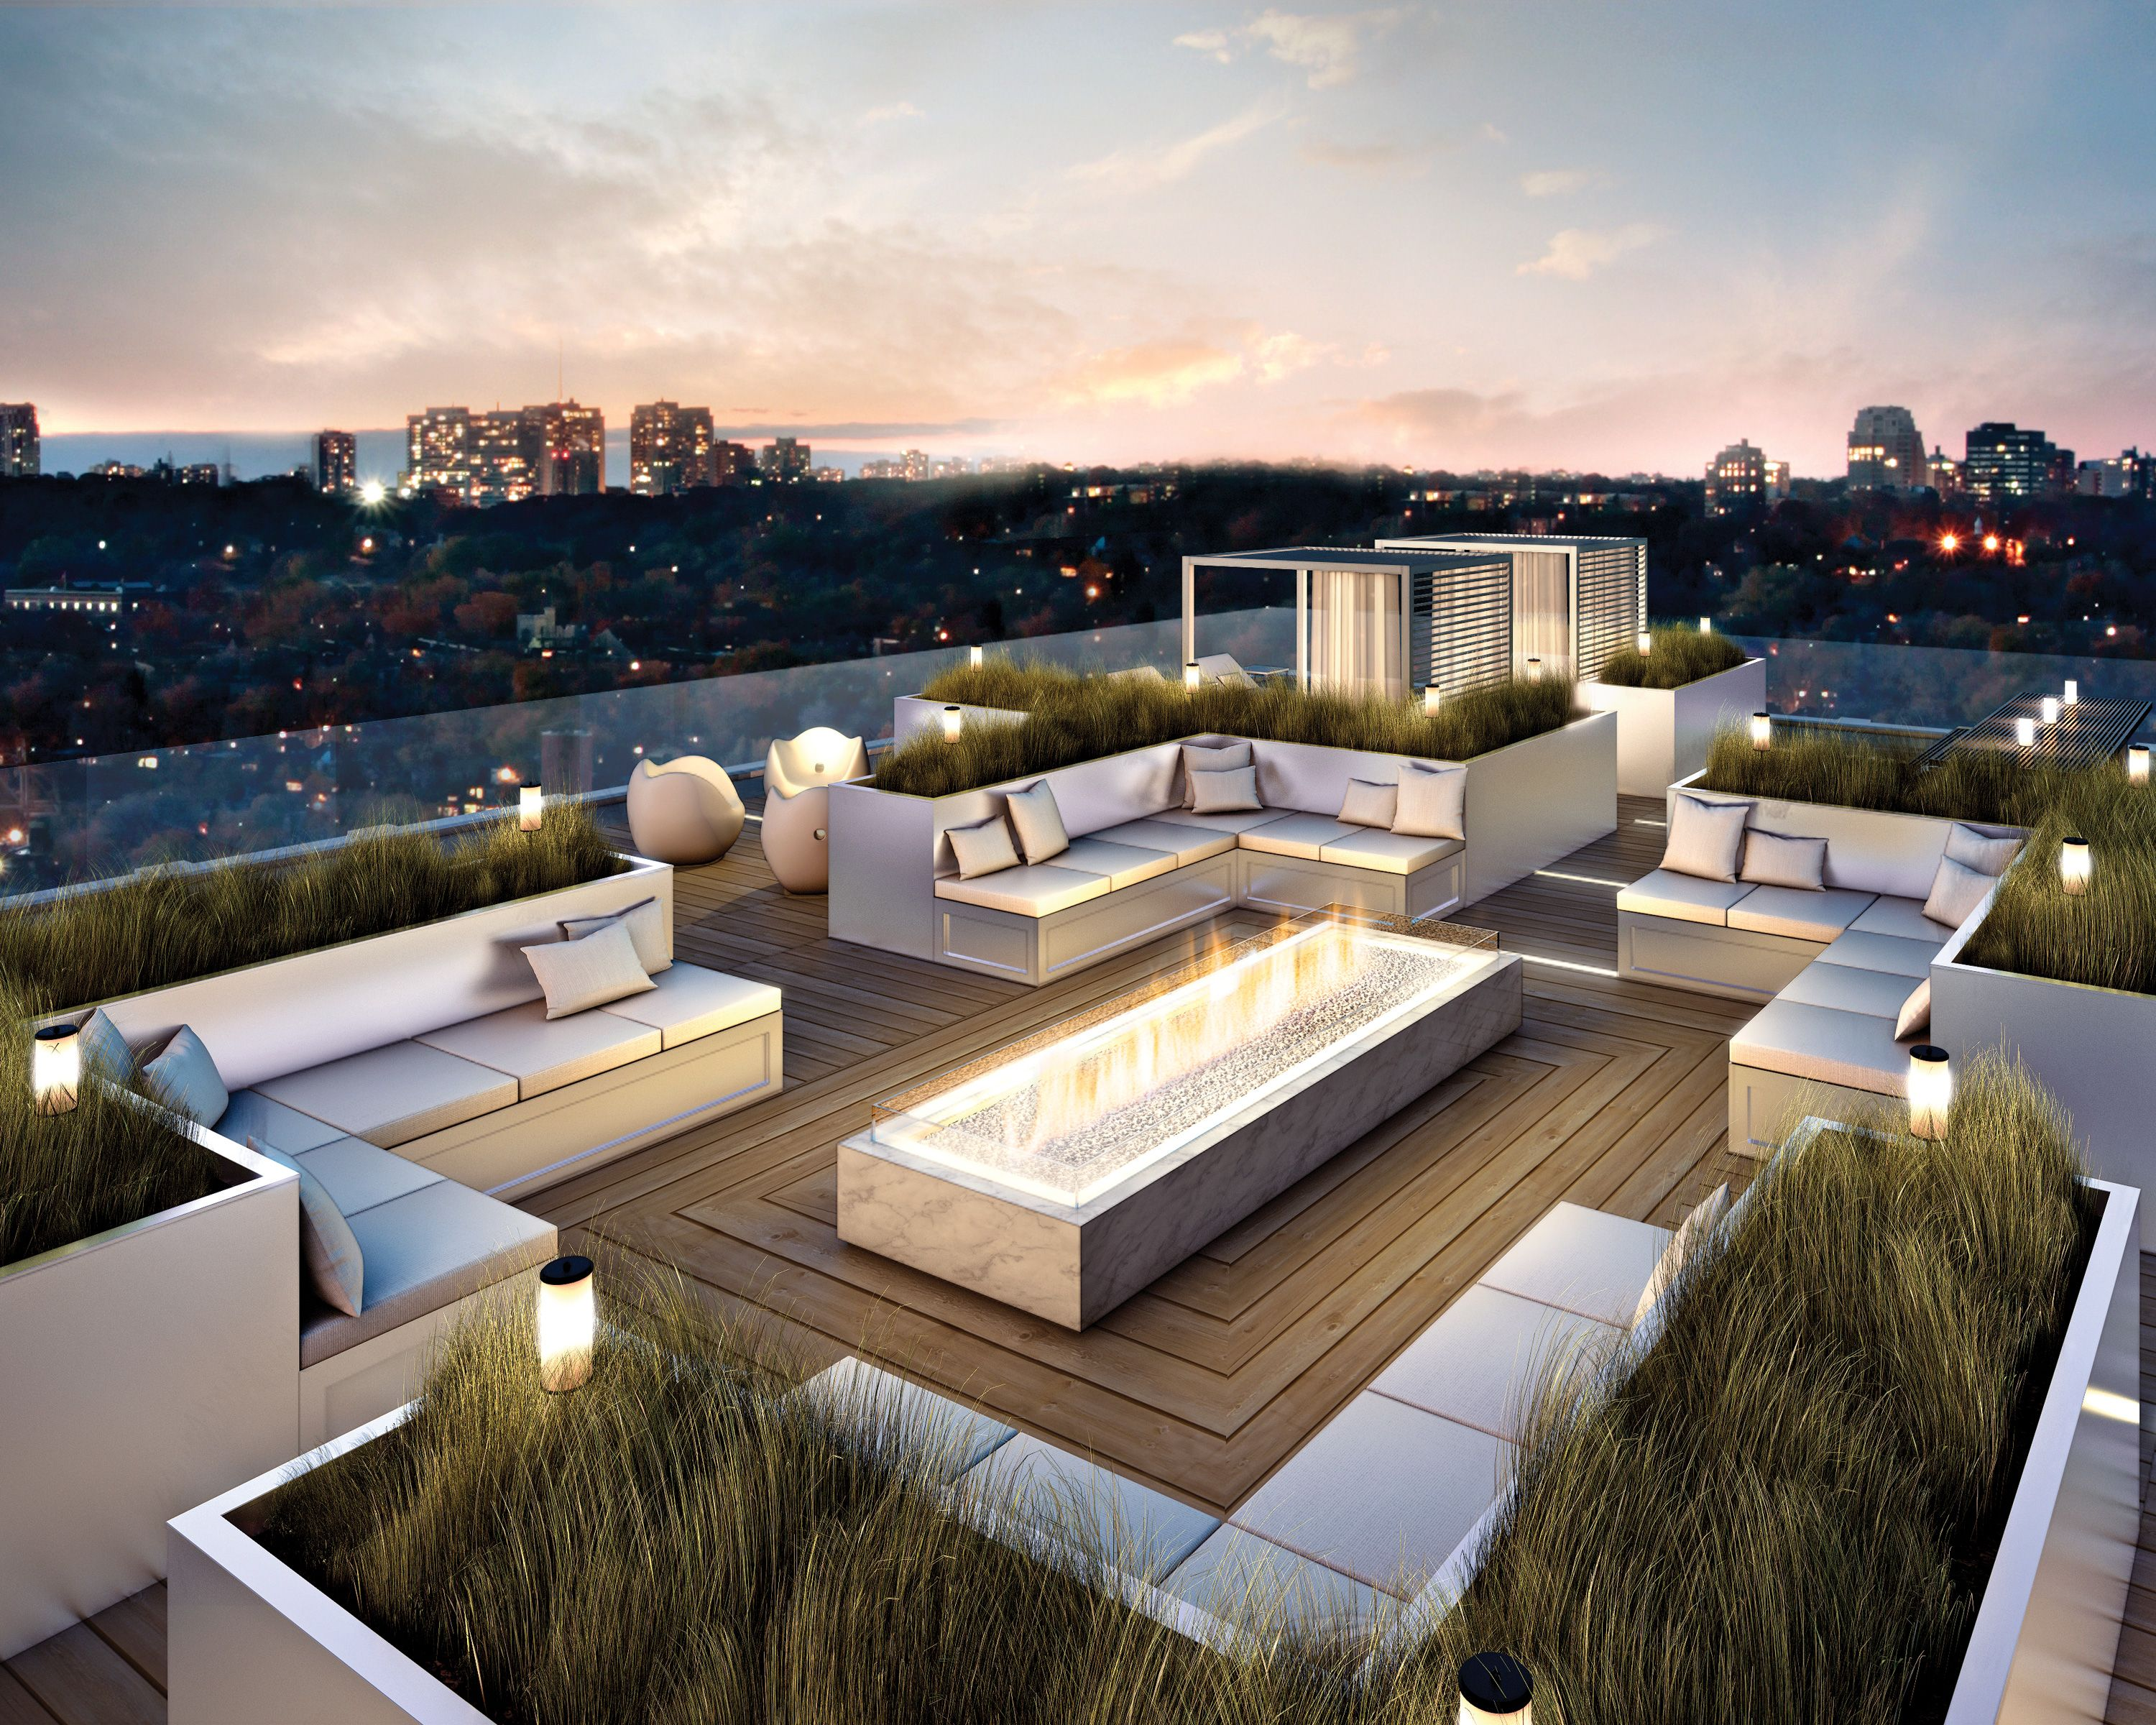 rooftop and terraces | Rooftop Terrace | Rooftop and Terraces ...